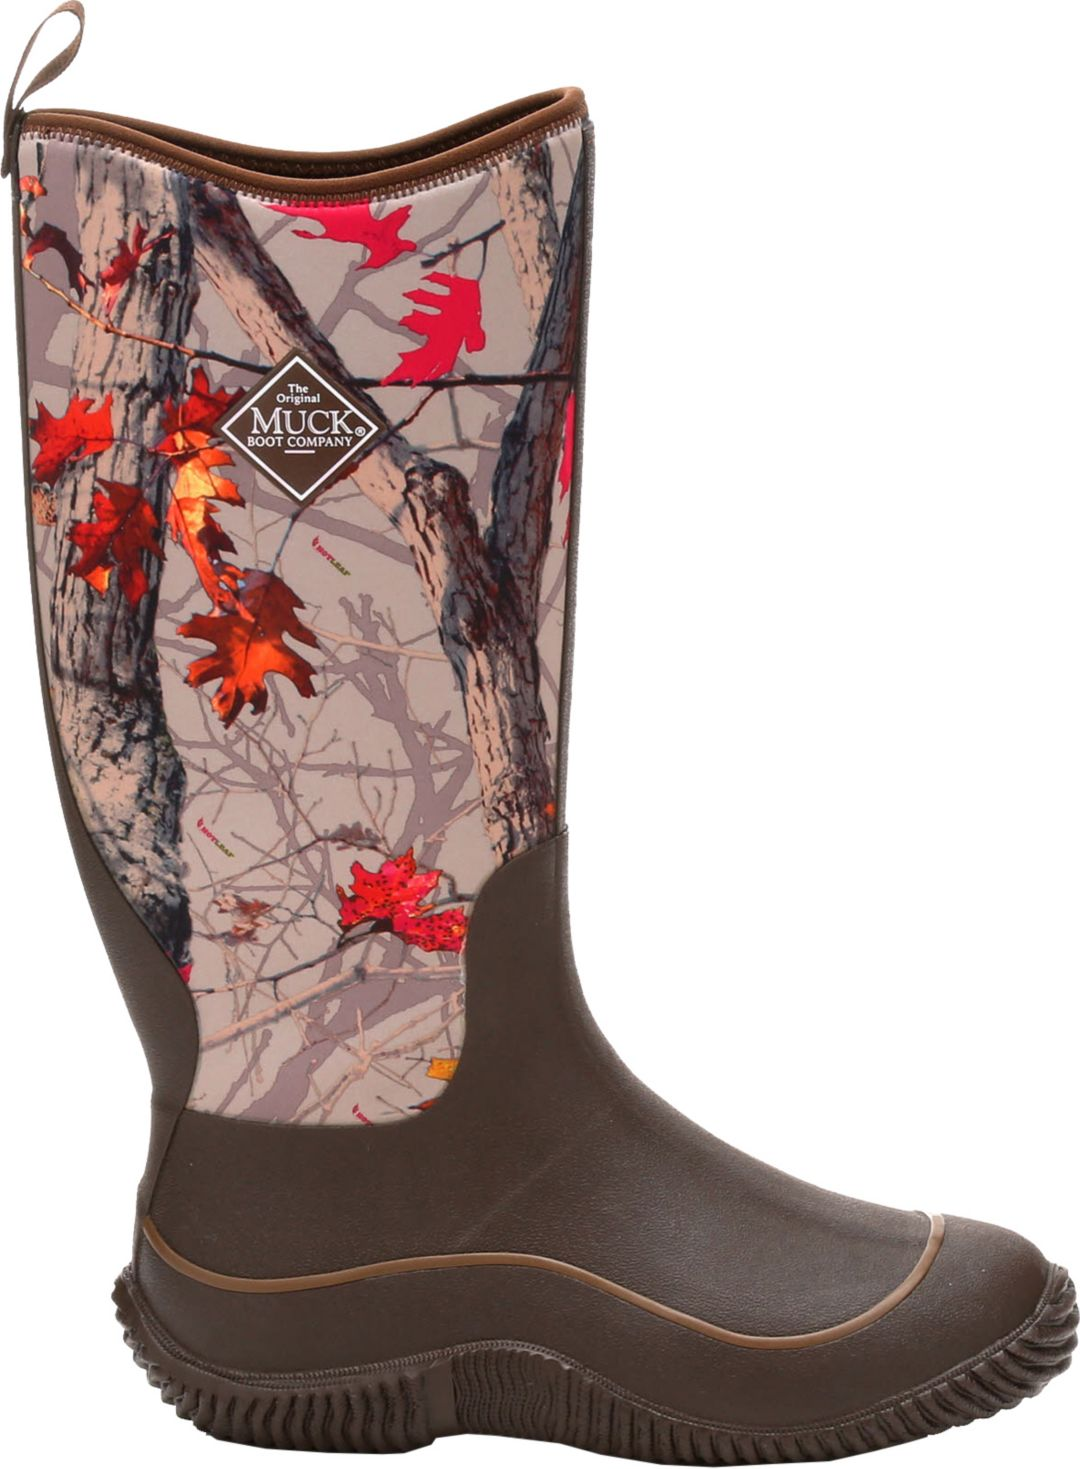 the best attitude 51d6a d5606 Muck Boots Women s Hale Rubber Hunting Boots   DICK S Sporting Goods